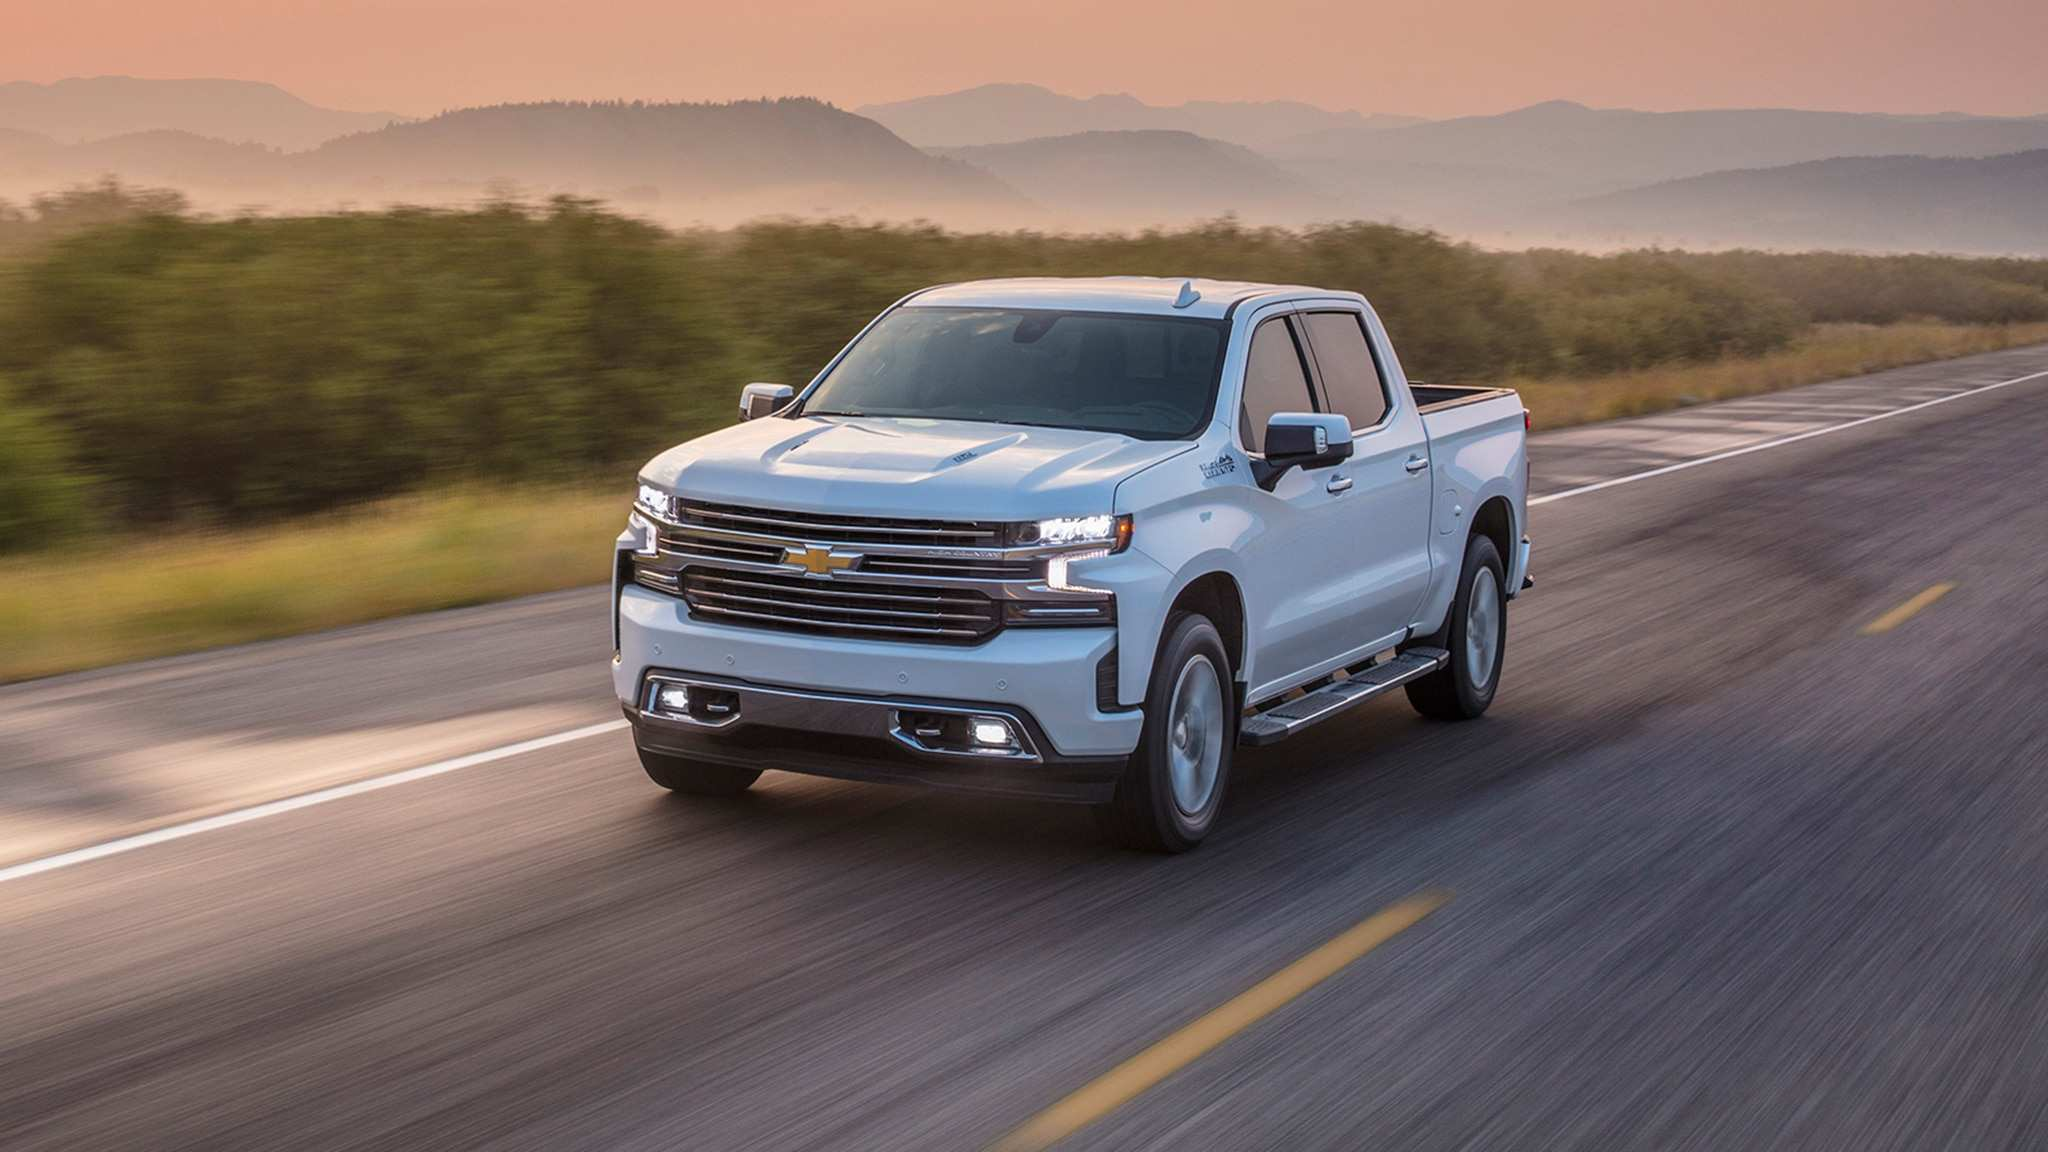 14 Concept of Best High Country Chevrolet 2019 Price And Review Ratings with Best High Country Chevrolet 2019 Price And Review